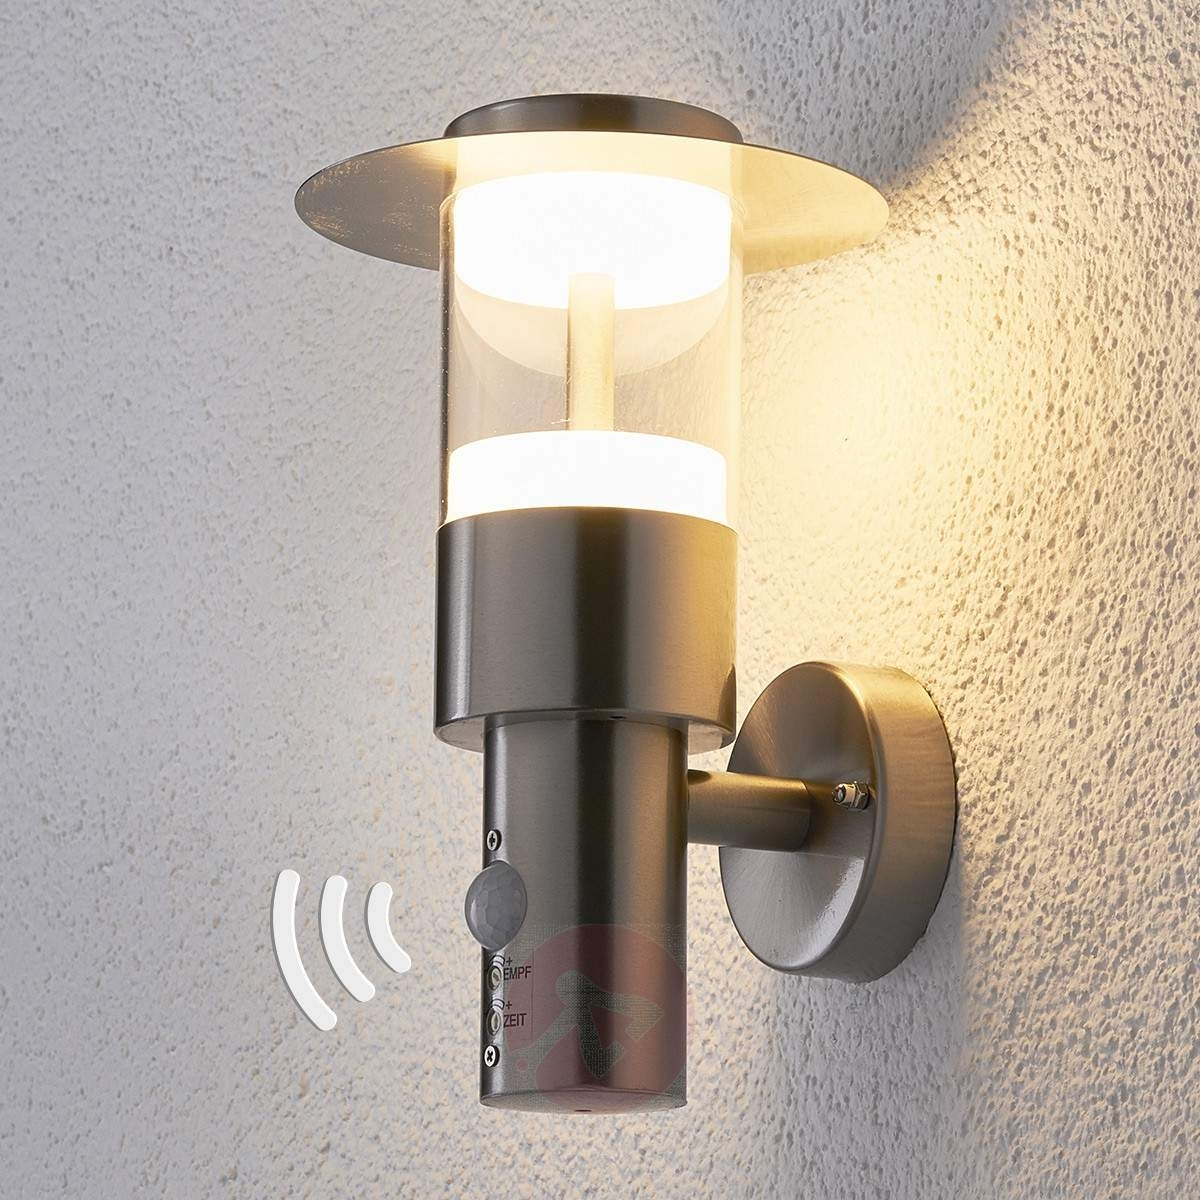 Led Presence Detector Outdoor Wall Light Anouk | Lights.co (#7 of 15)